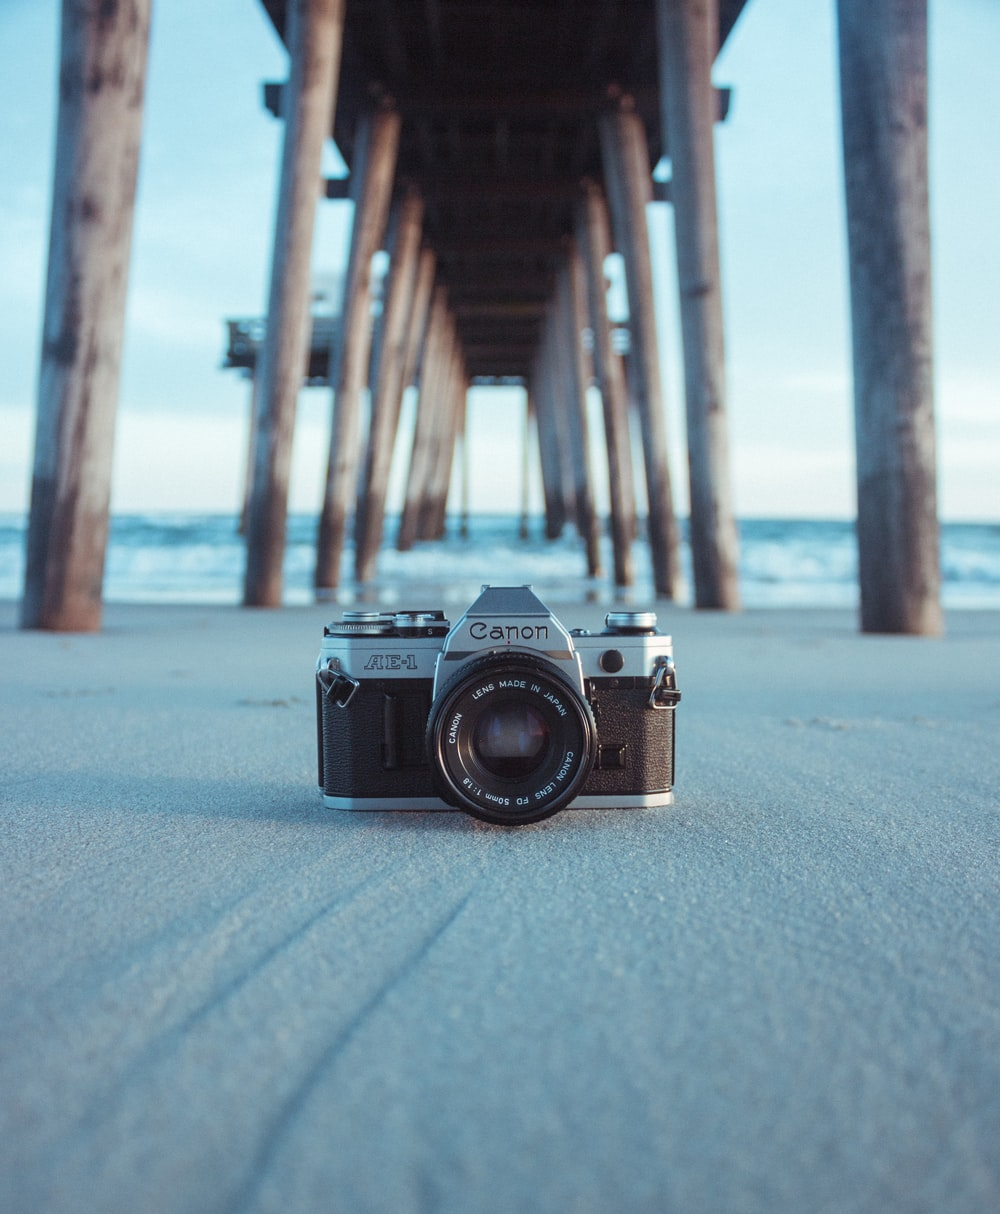 black and gray Canon AE-1 camera on gray sand under brown dock near body of water at daytime